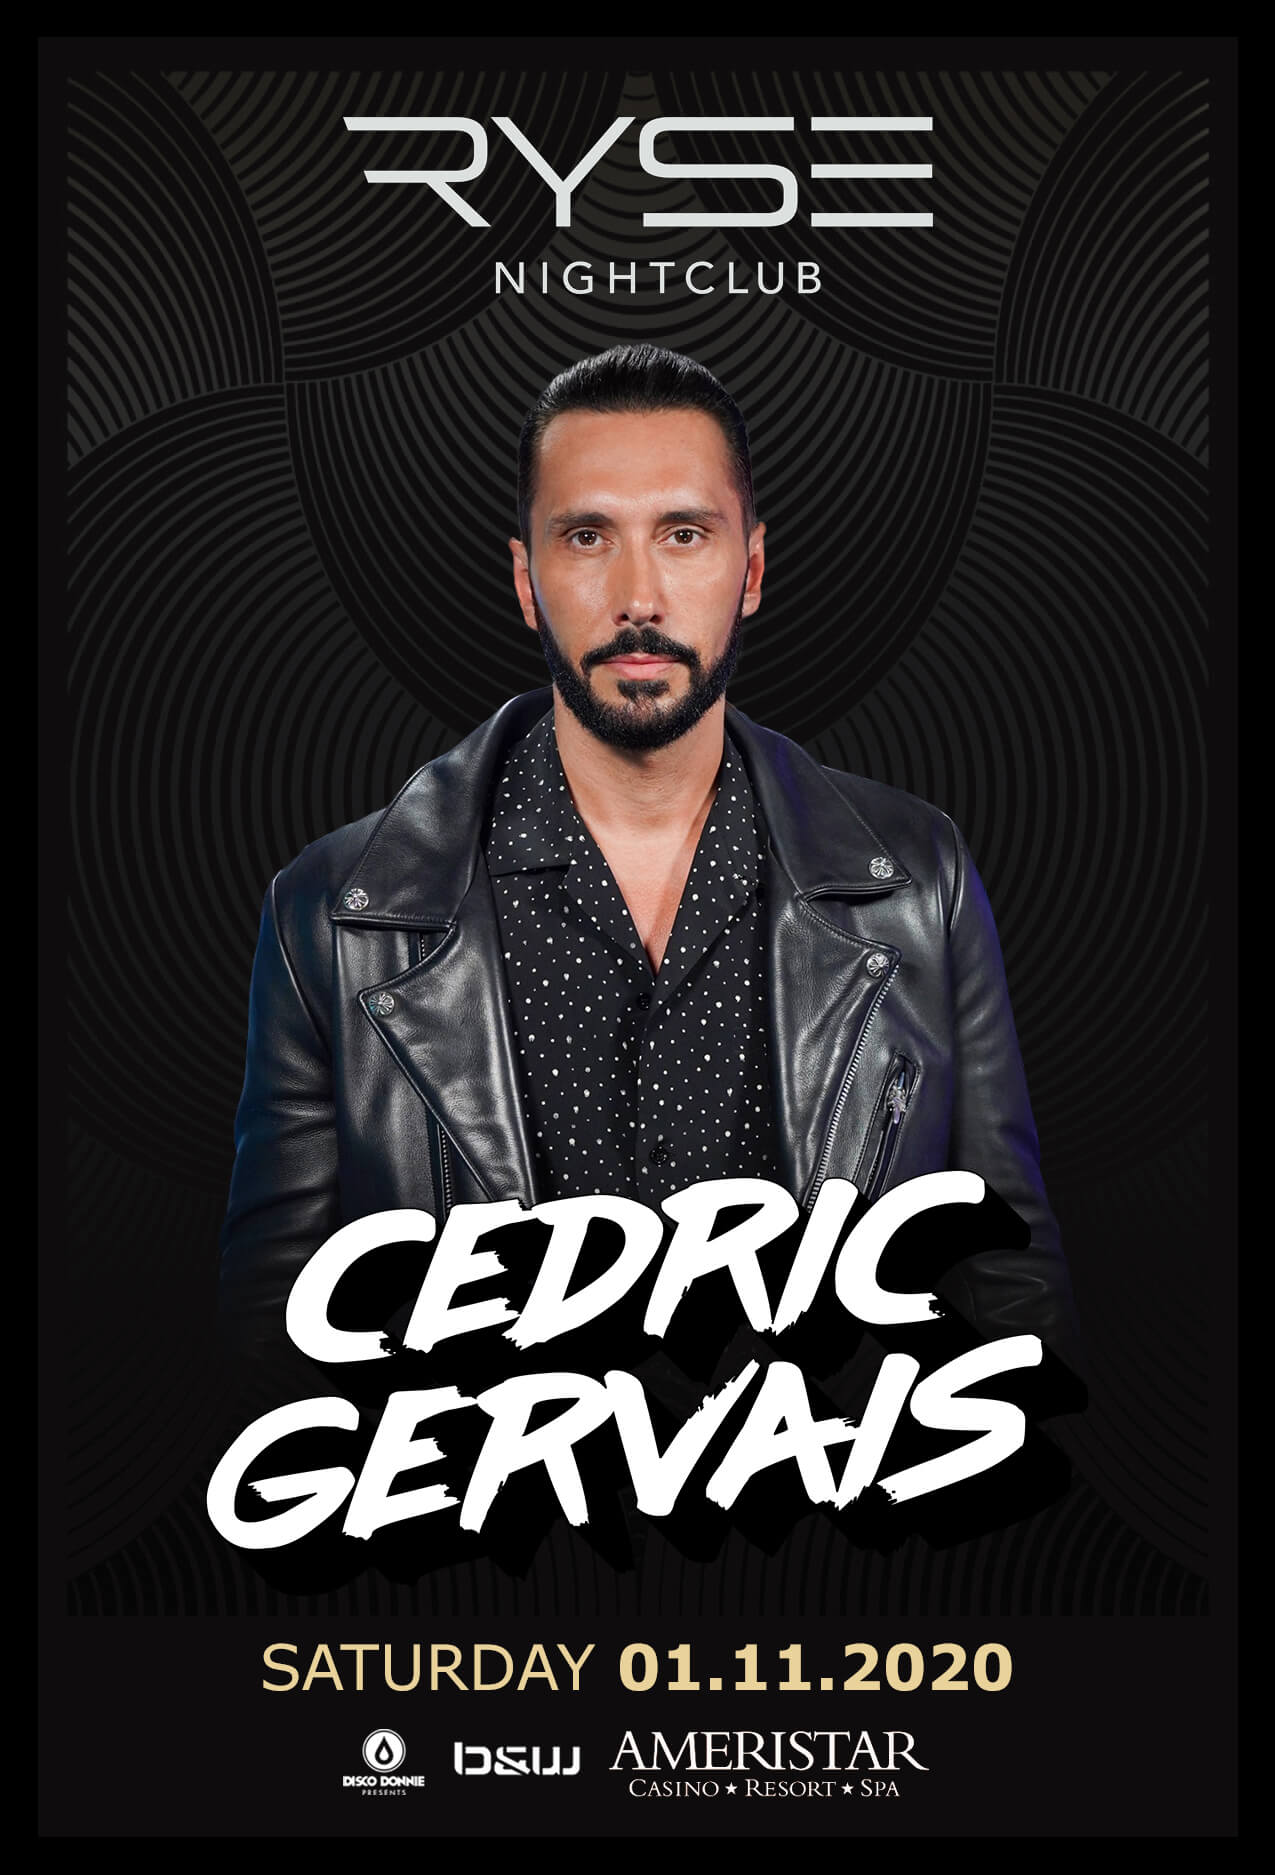 Cedric Gervais in St Charles